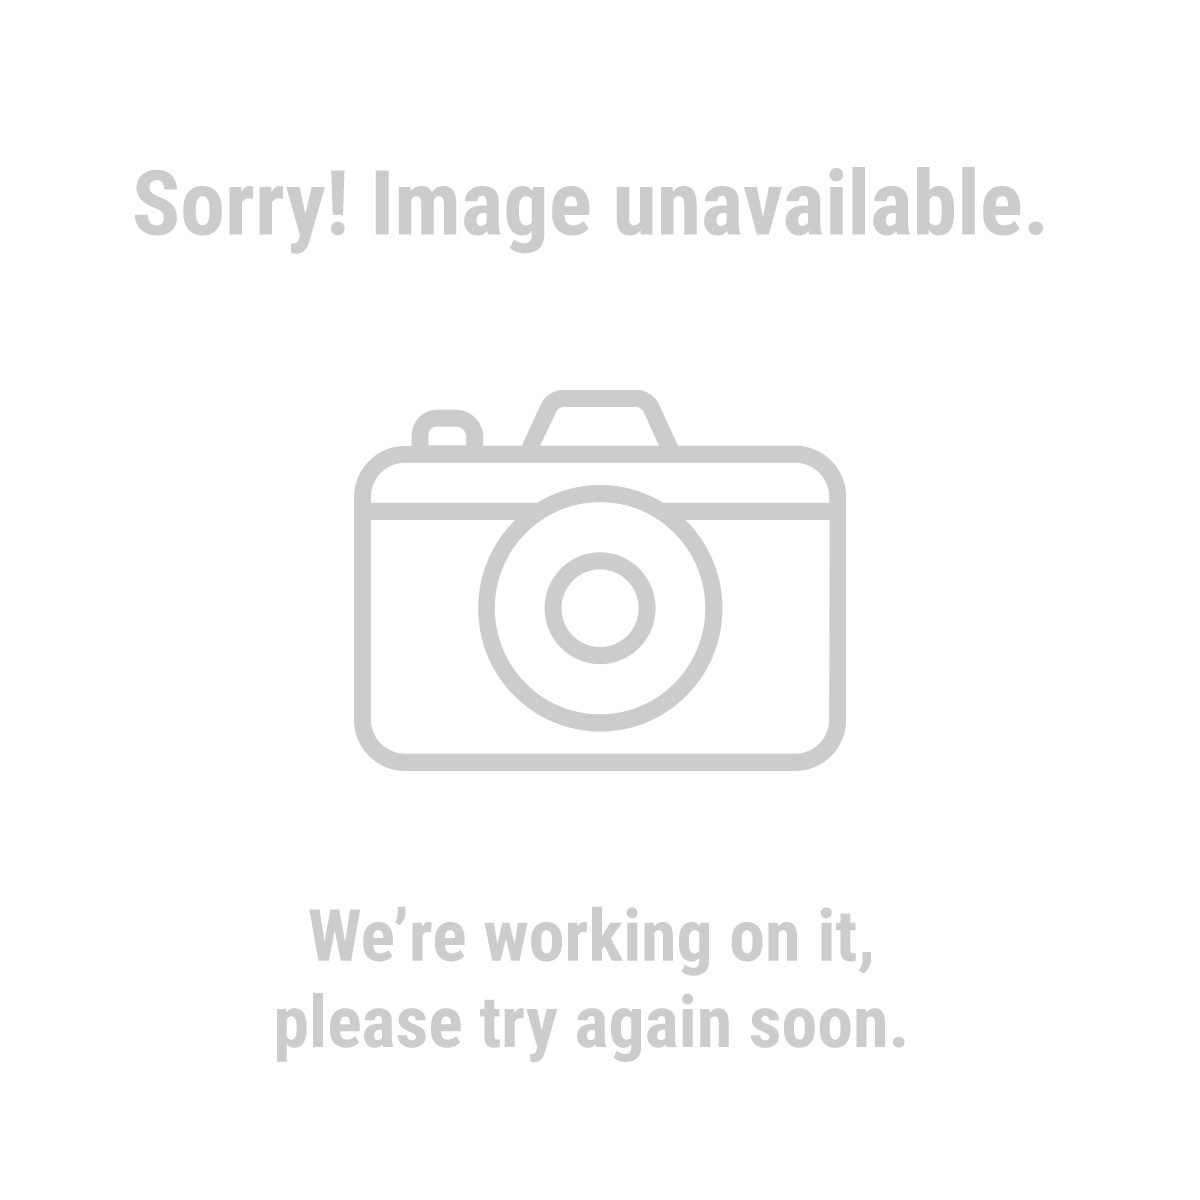 2666 11 Piece Professional Paint Roller Set